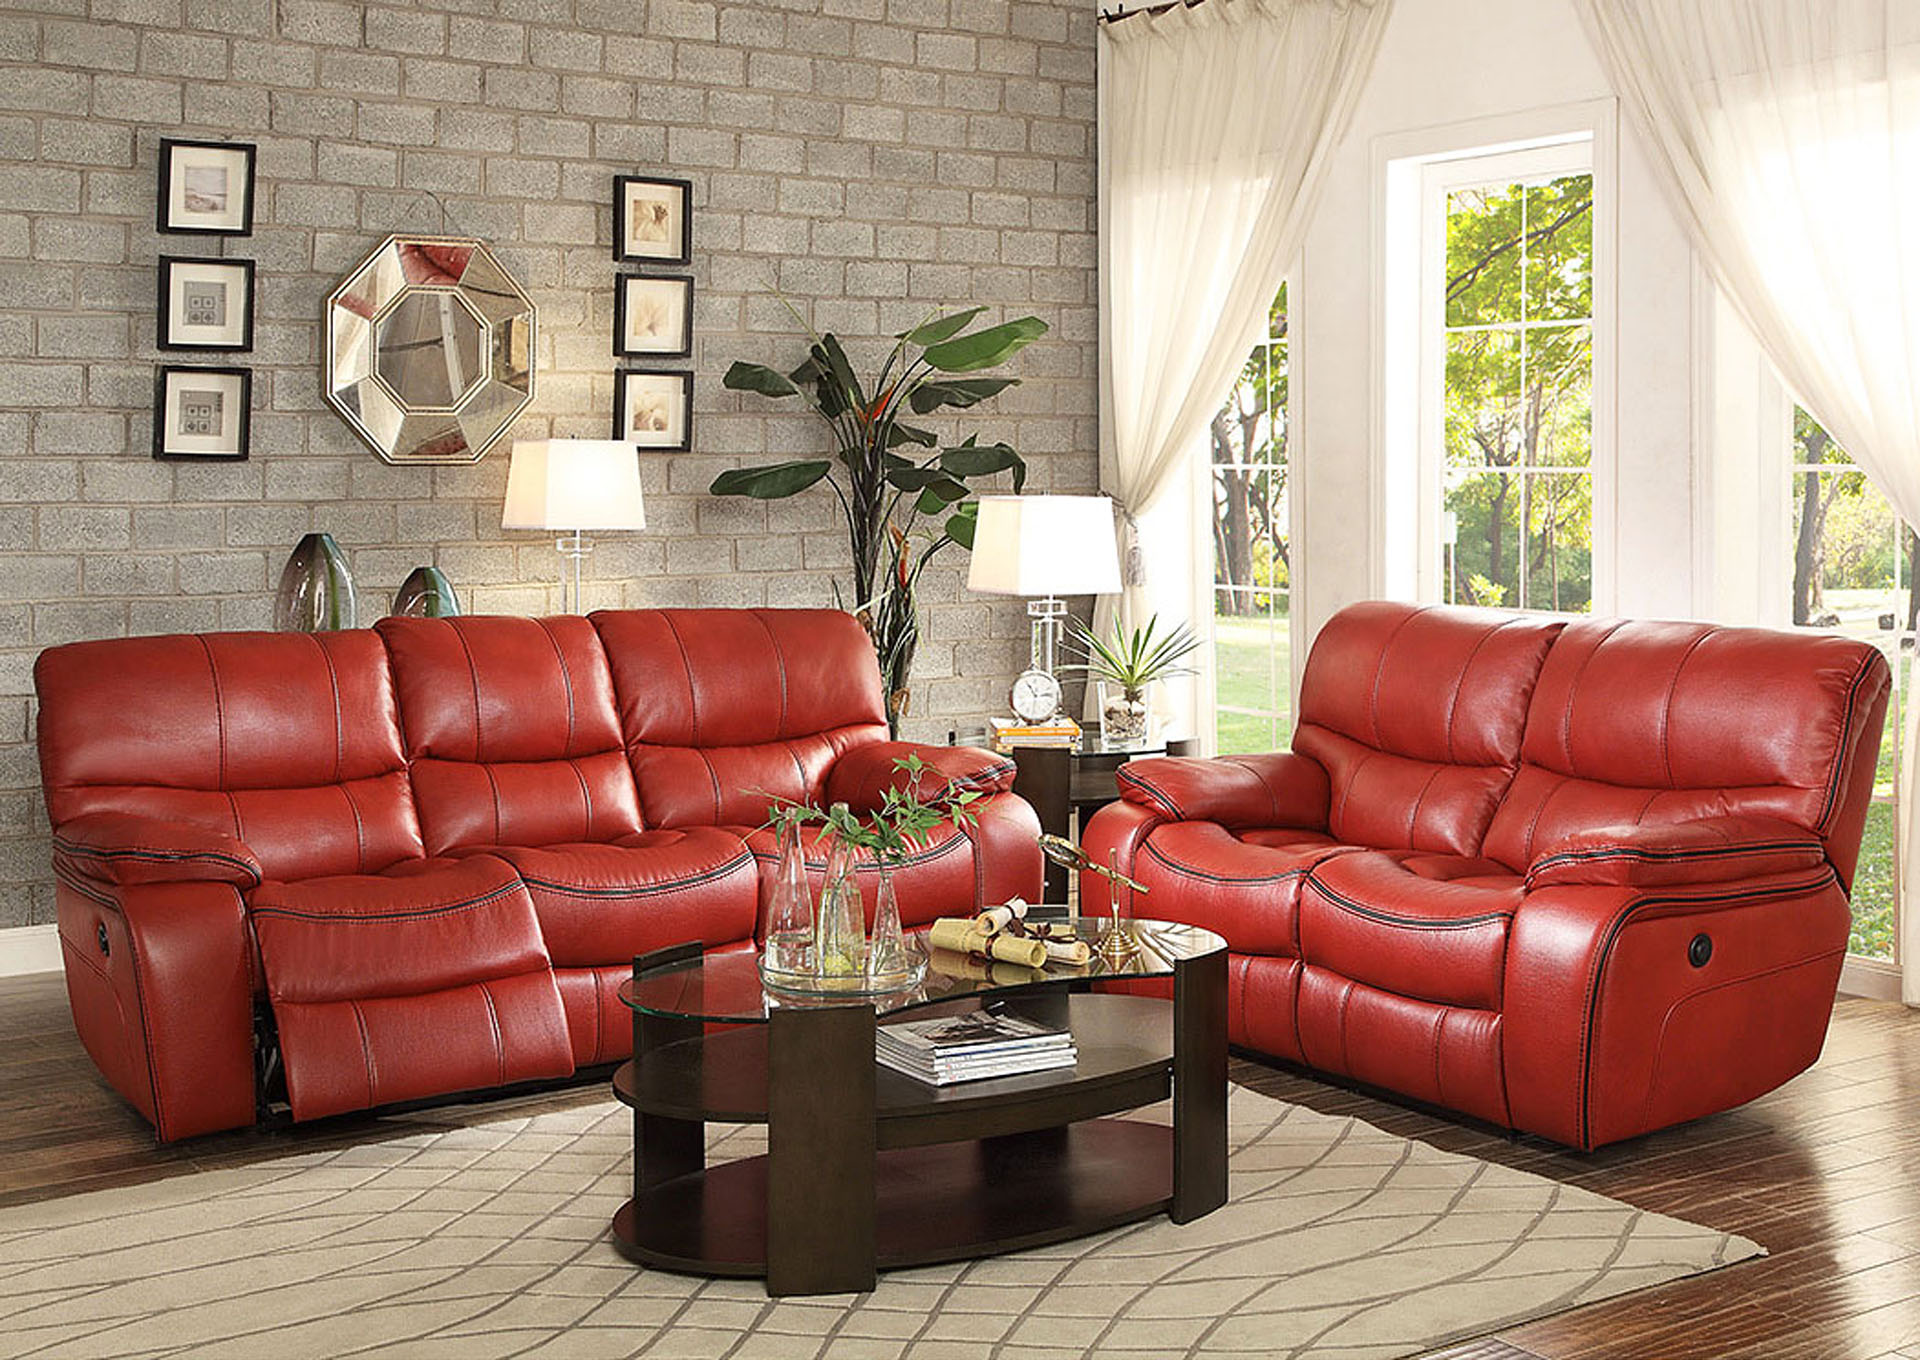 Compass Furniture Pecos Red Leather Double Reclining Sofa